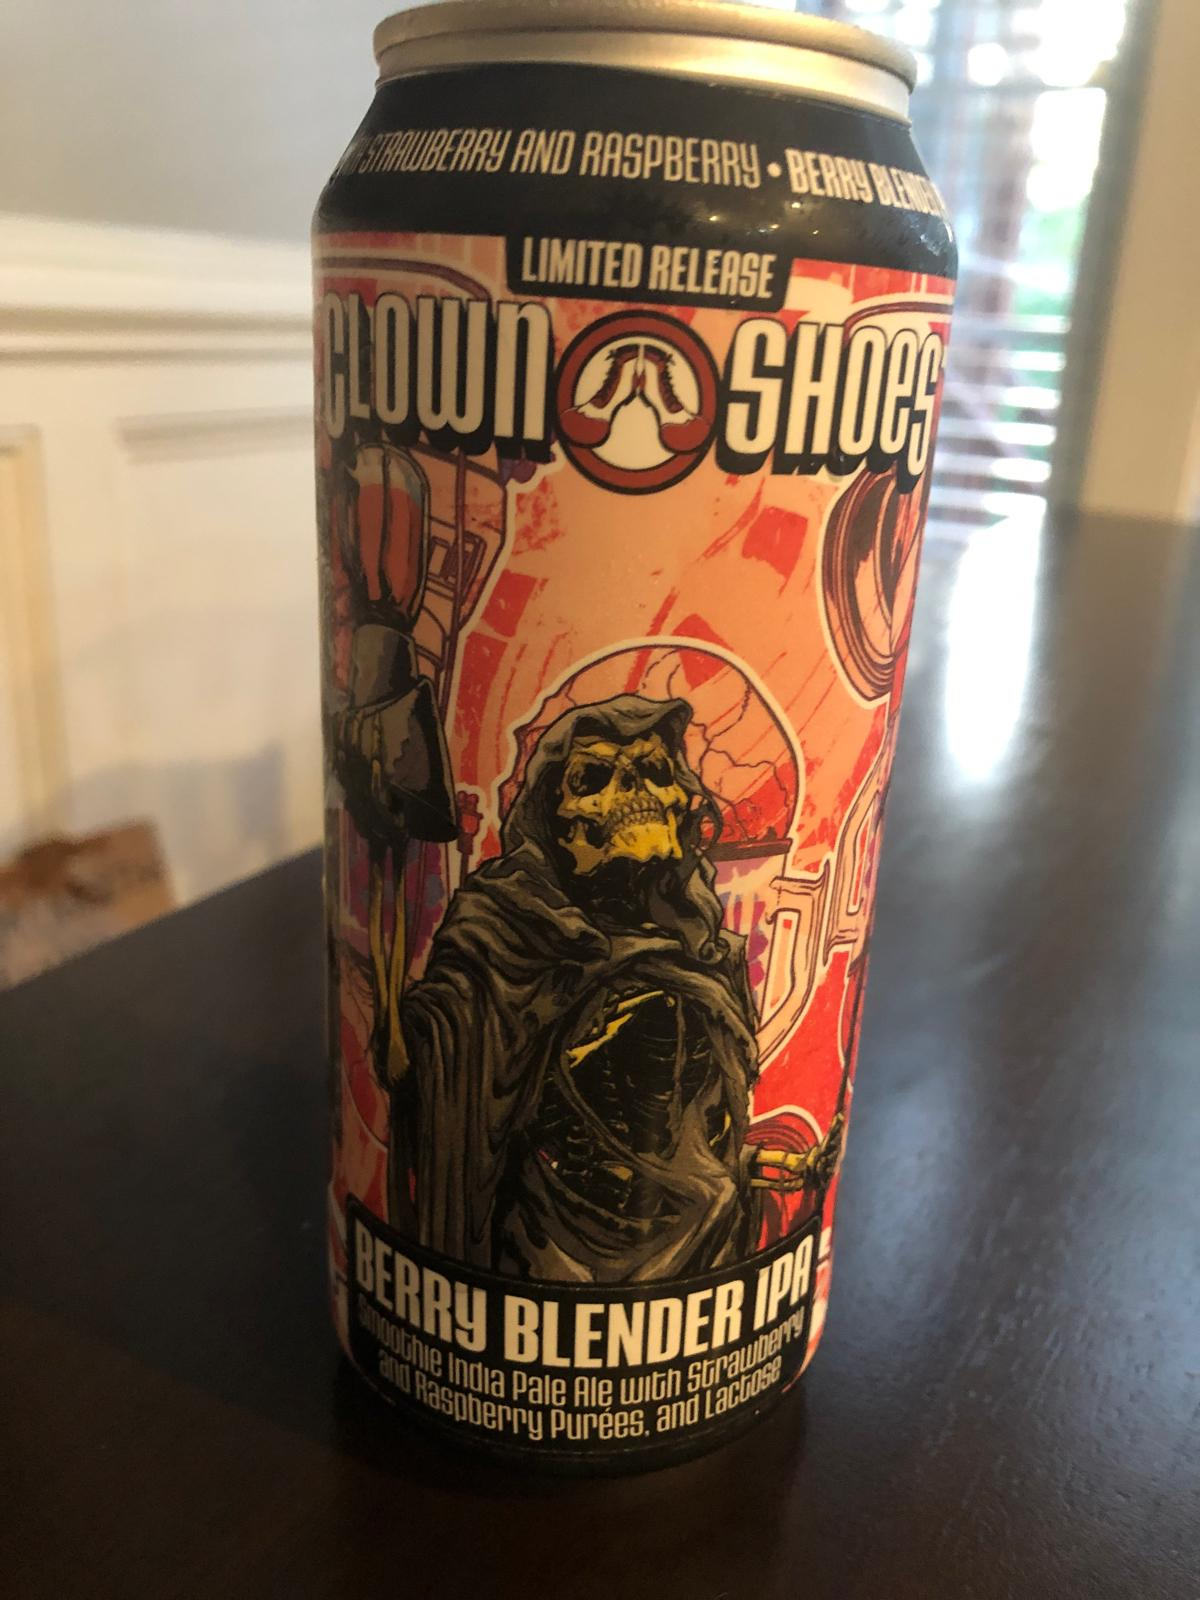 Berry Blender IPA